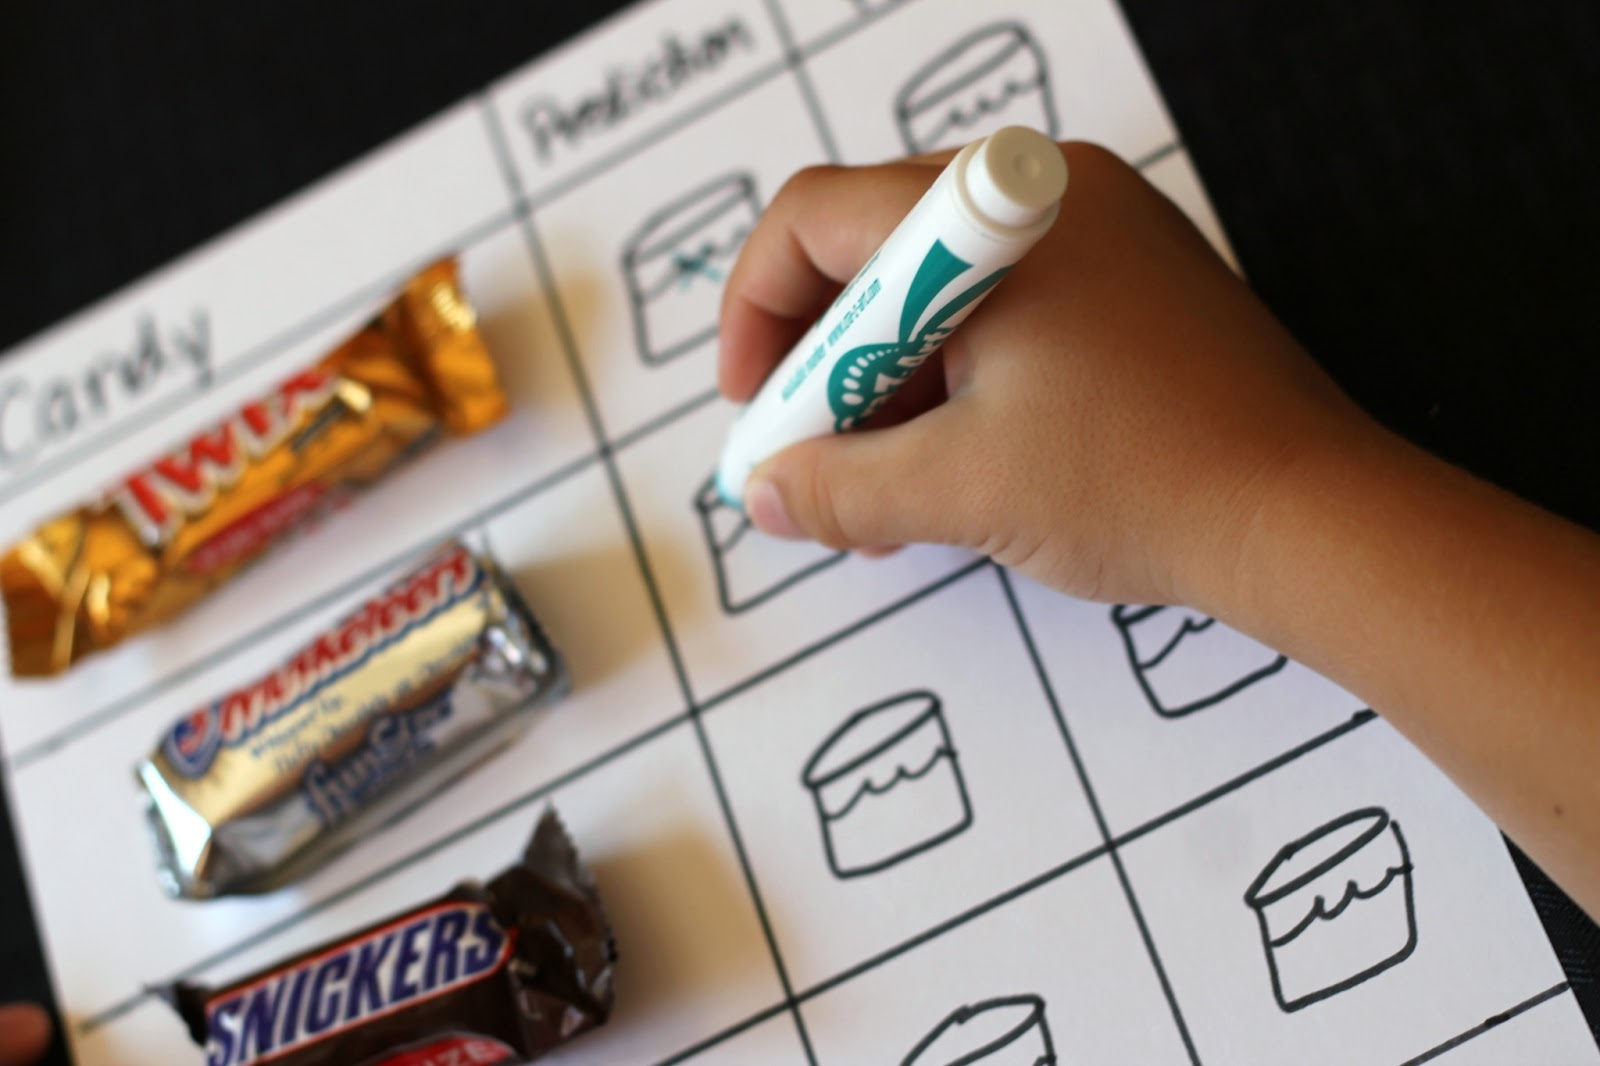 Will My Snickers Bar Sink Or Float Pg 261